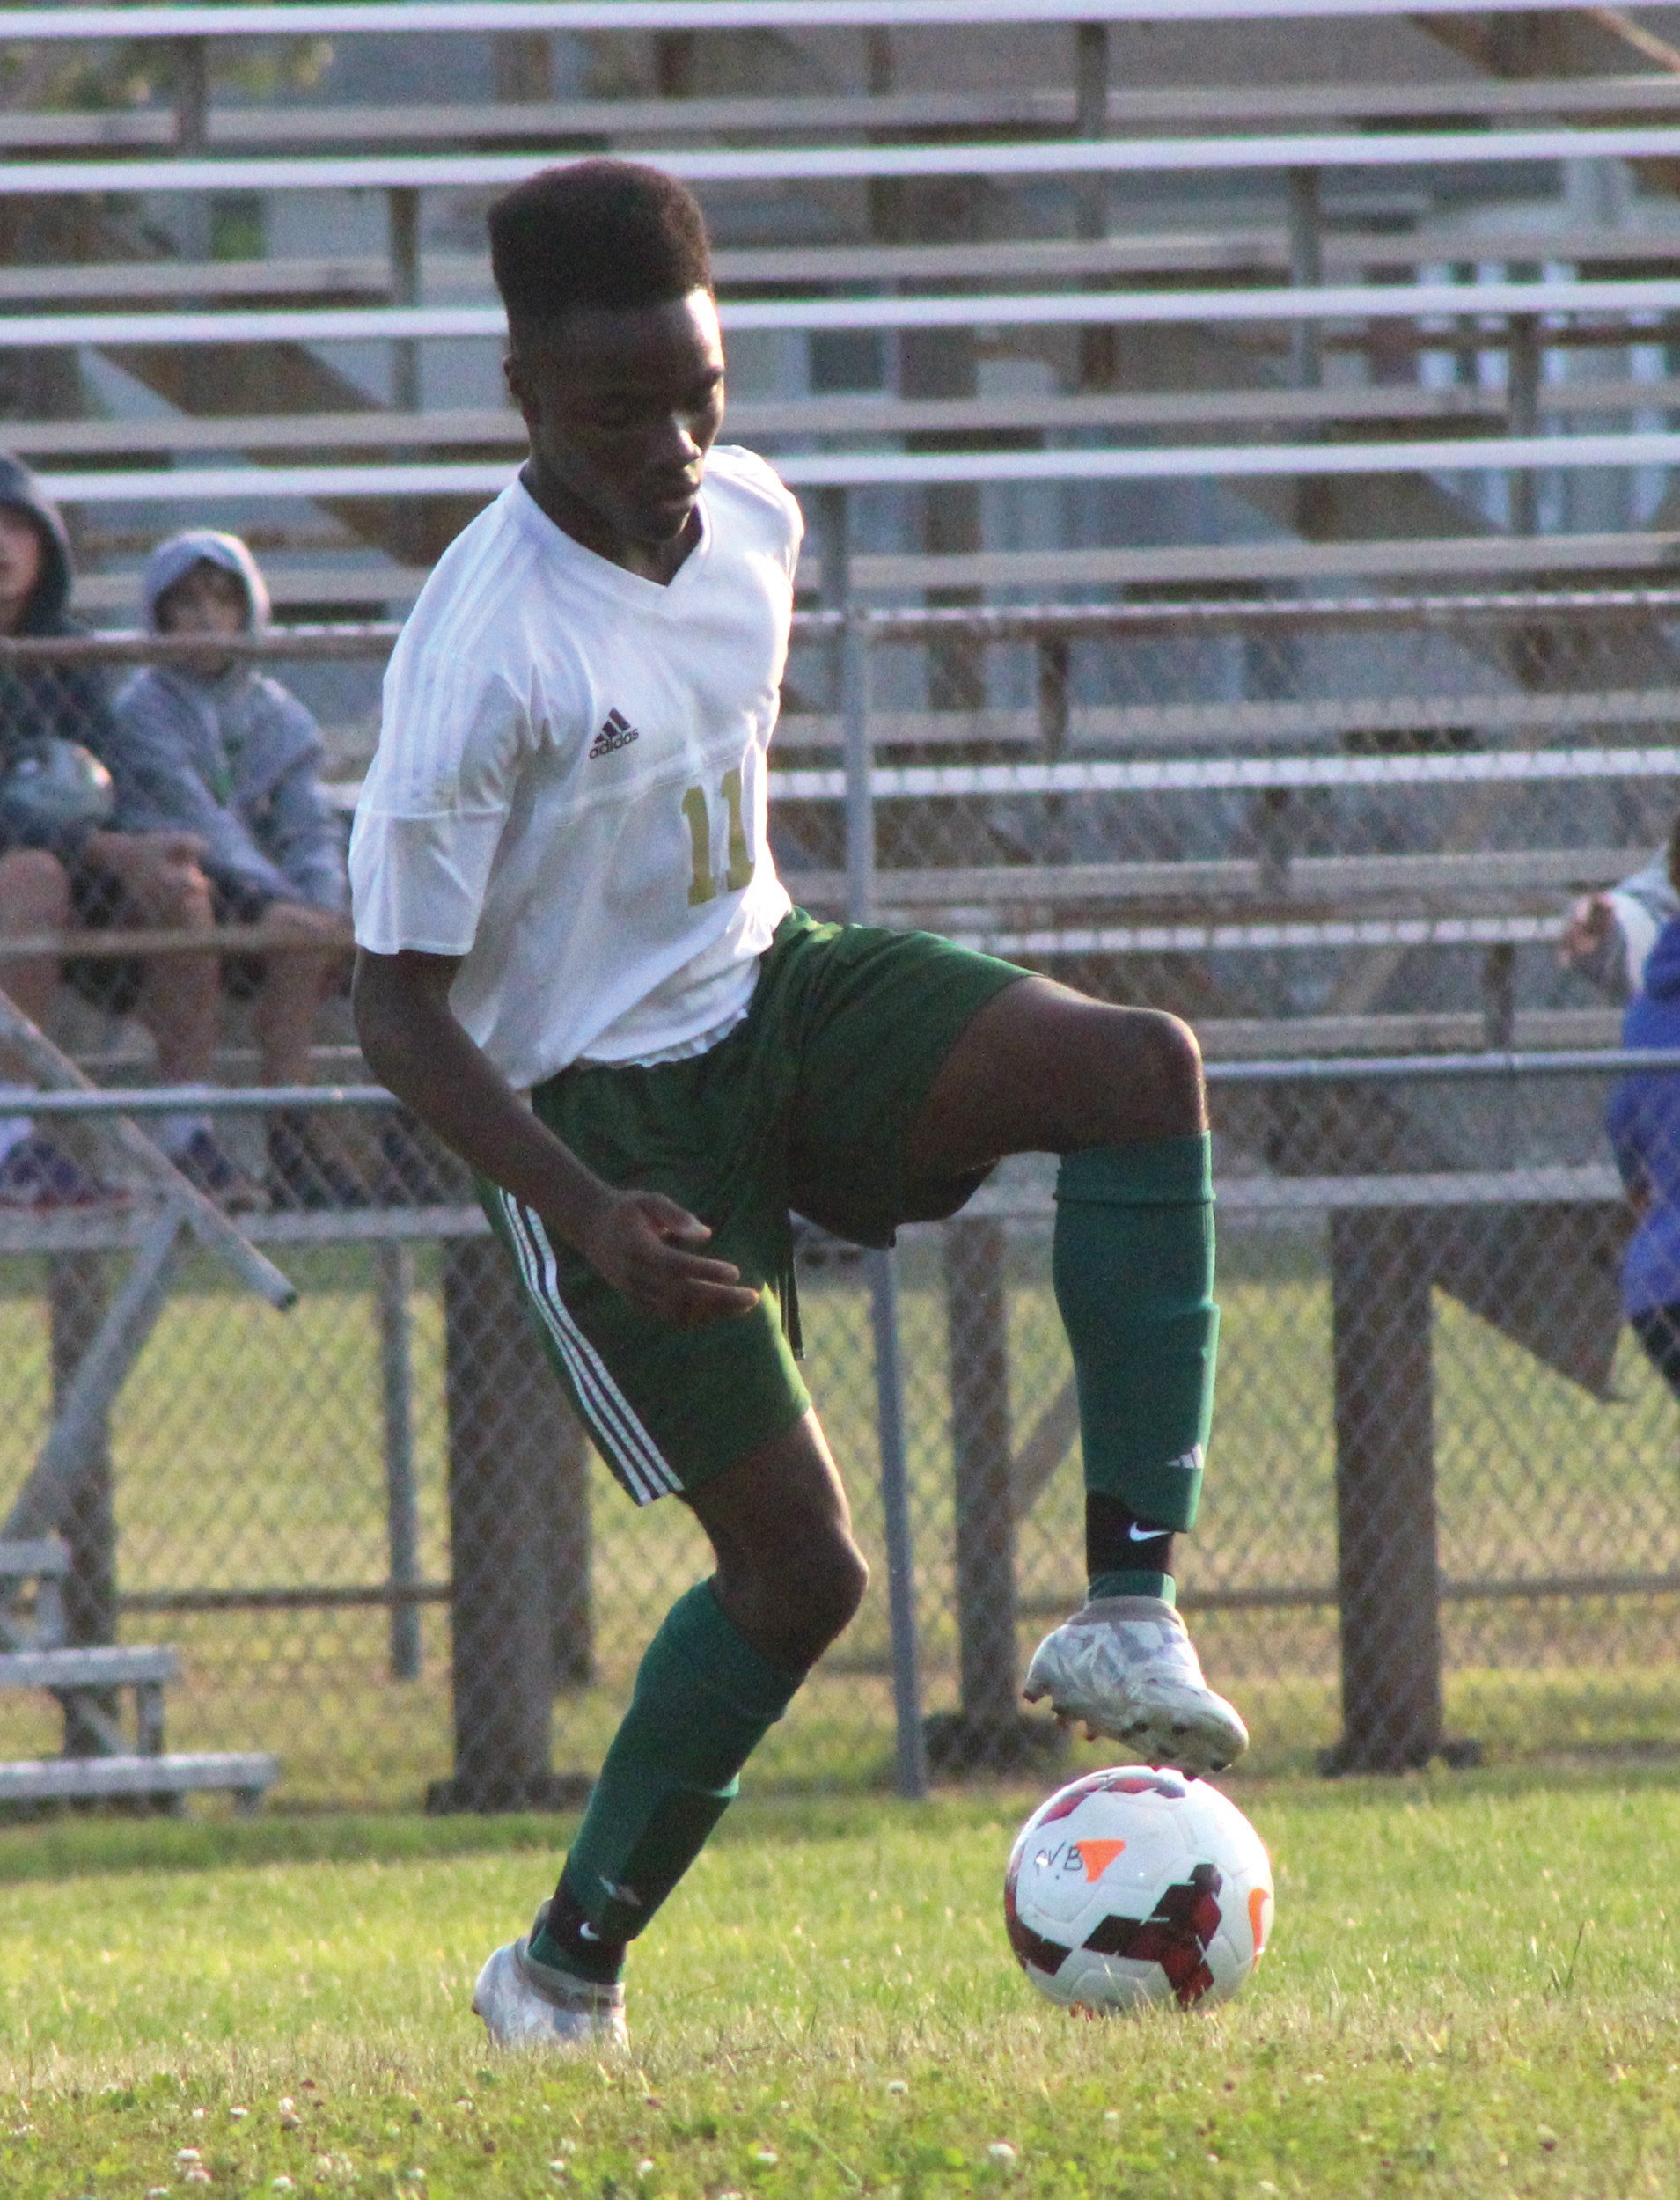 IN CONTROL: Chukwuma Onyejose looks to make a play for the Hawks on Thursday.